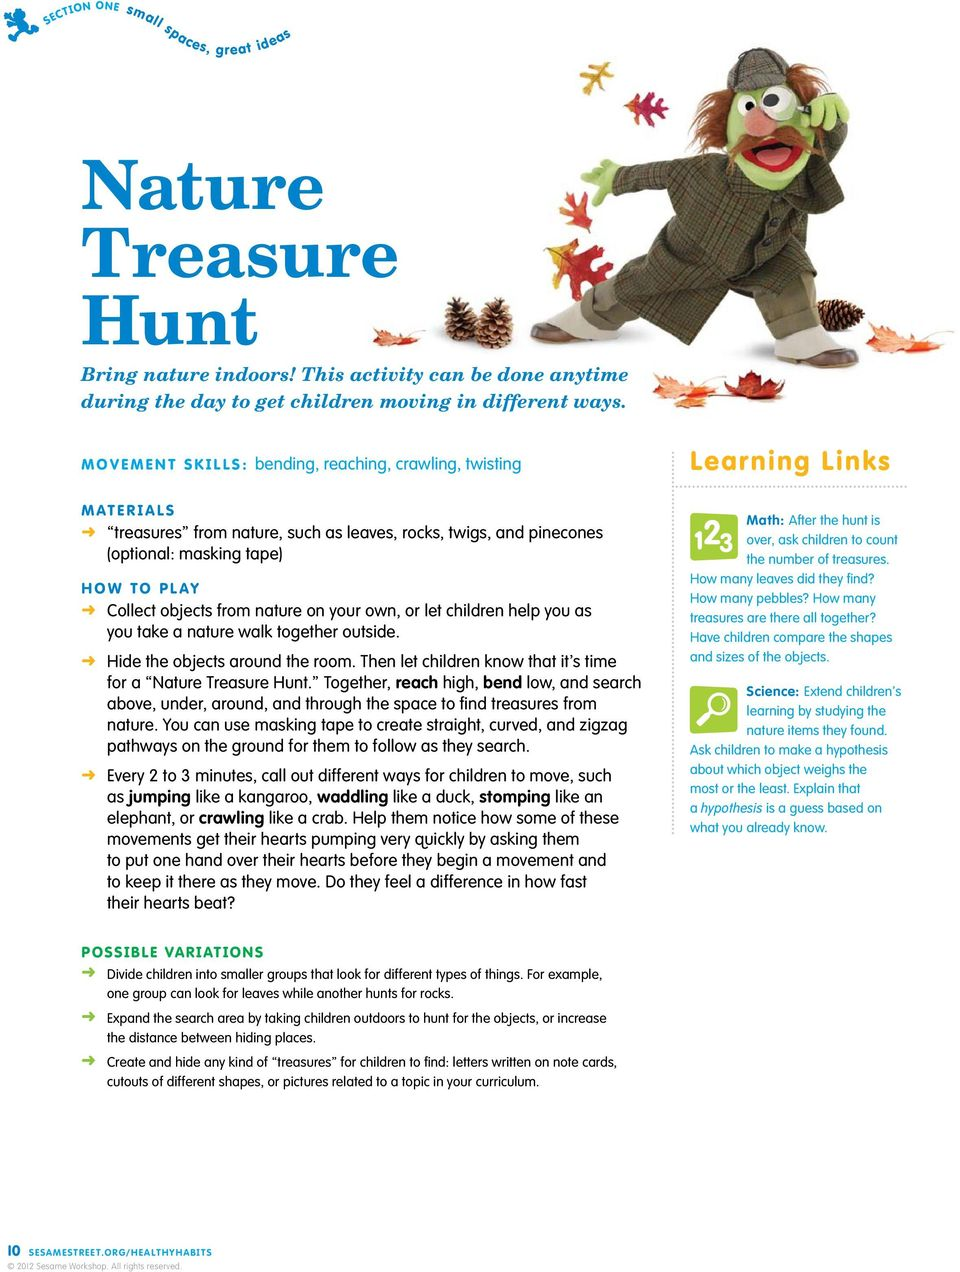 objects from nature on your own, or let children help you as you take a nature walk together outside. Hide the objects around the room.